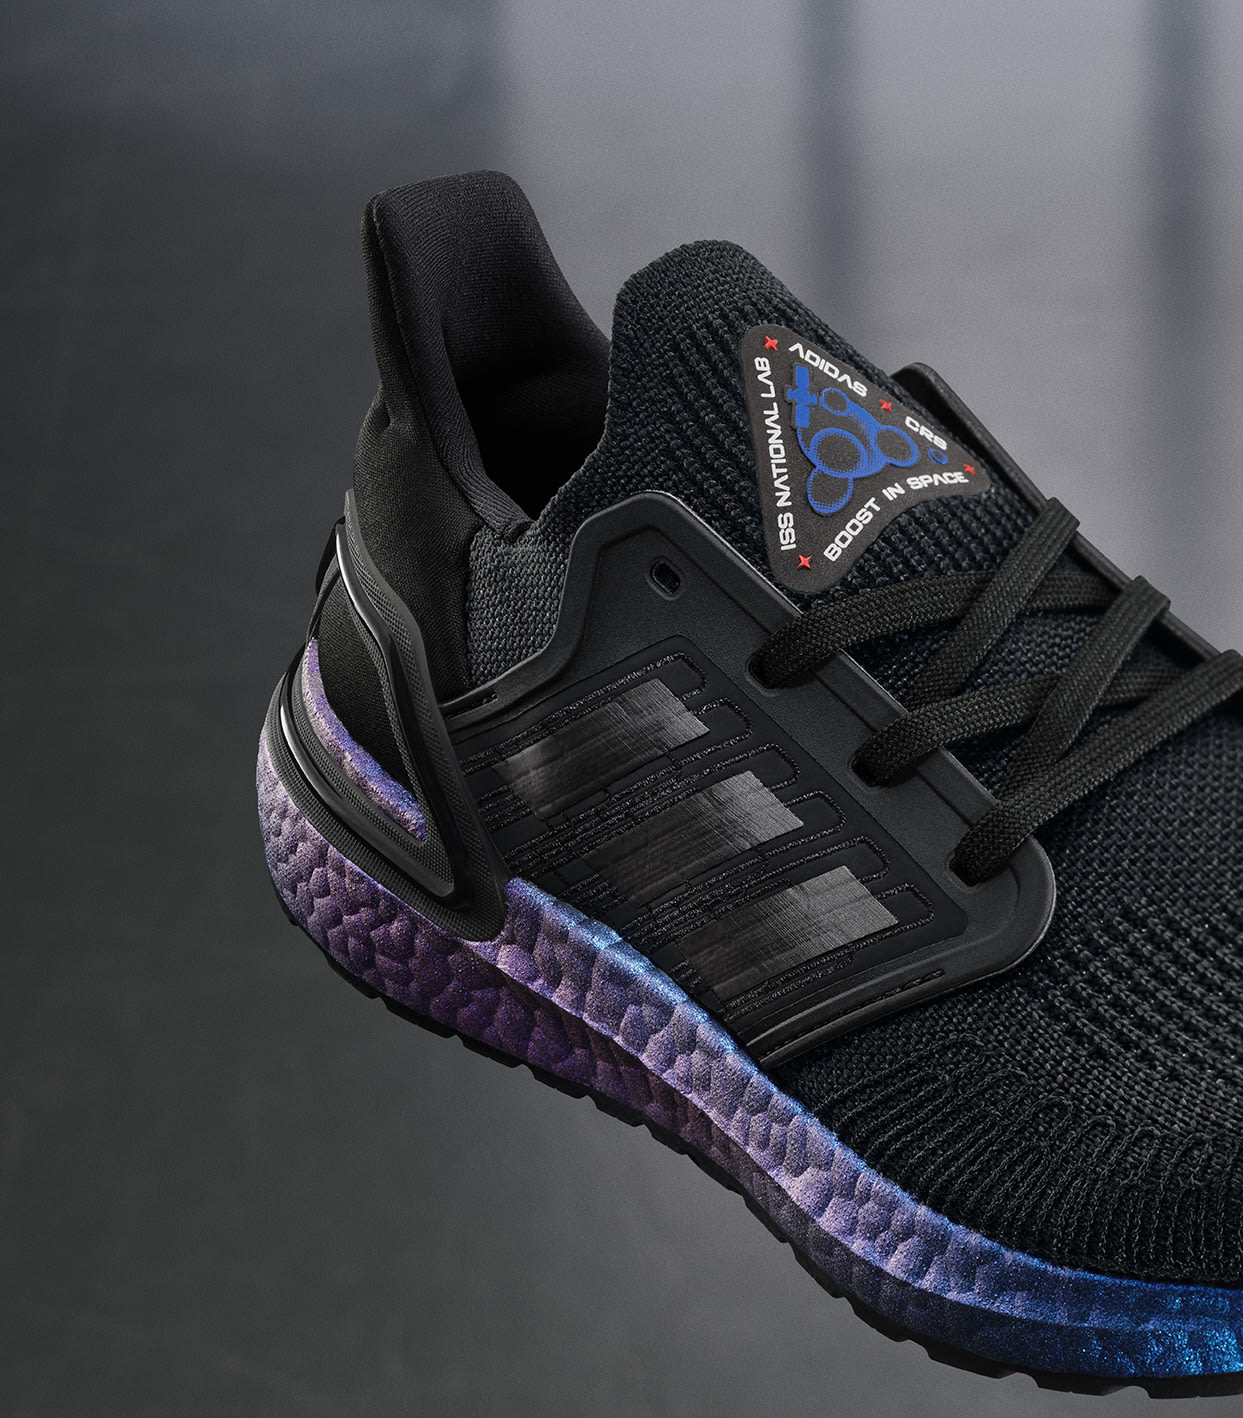 adidas-ultraboost-20-black-tongue-close-up